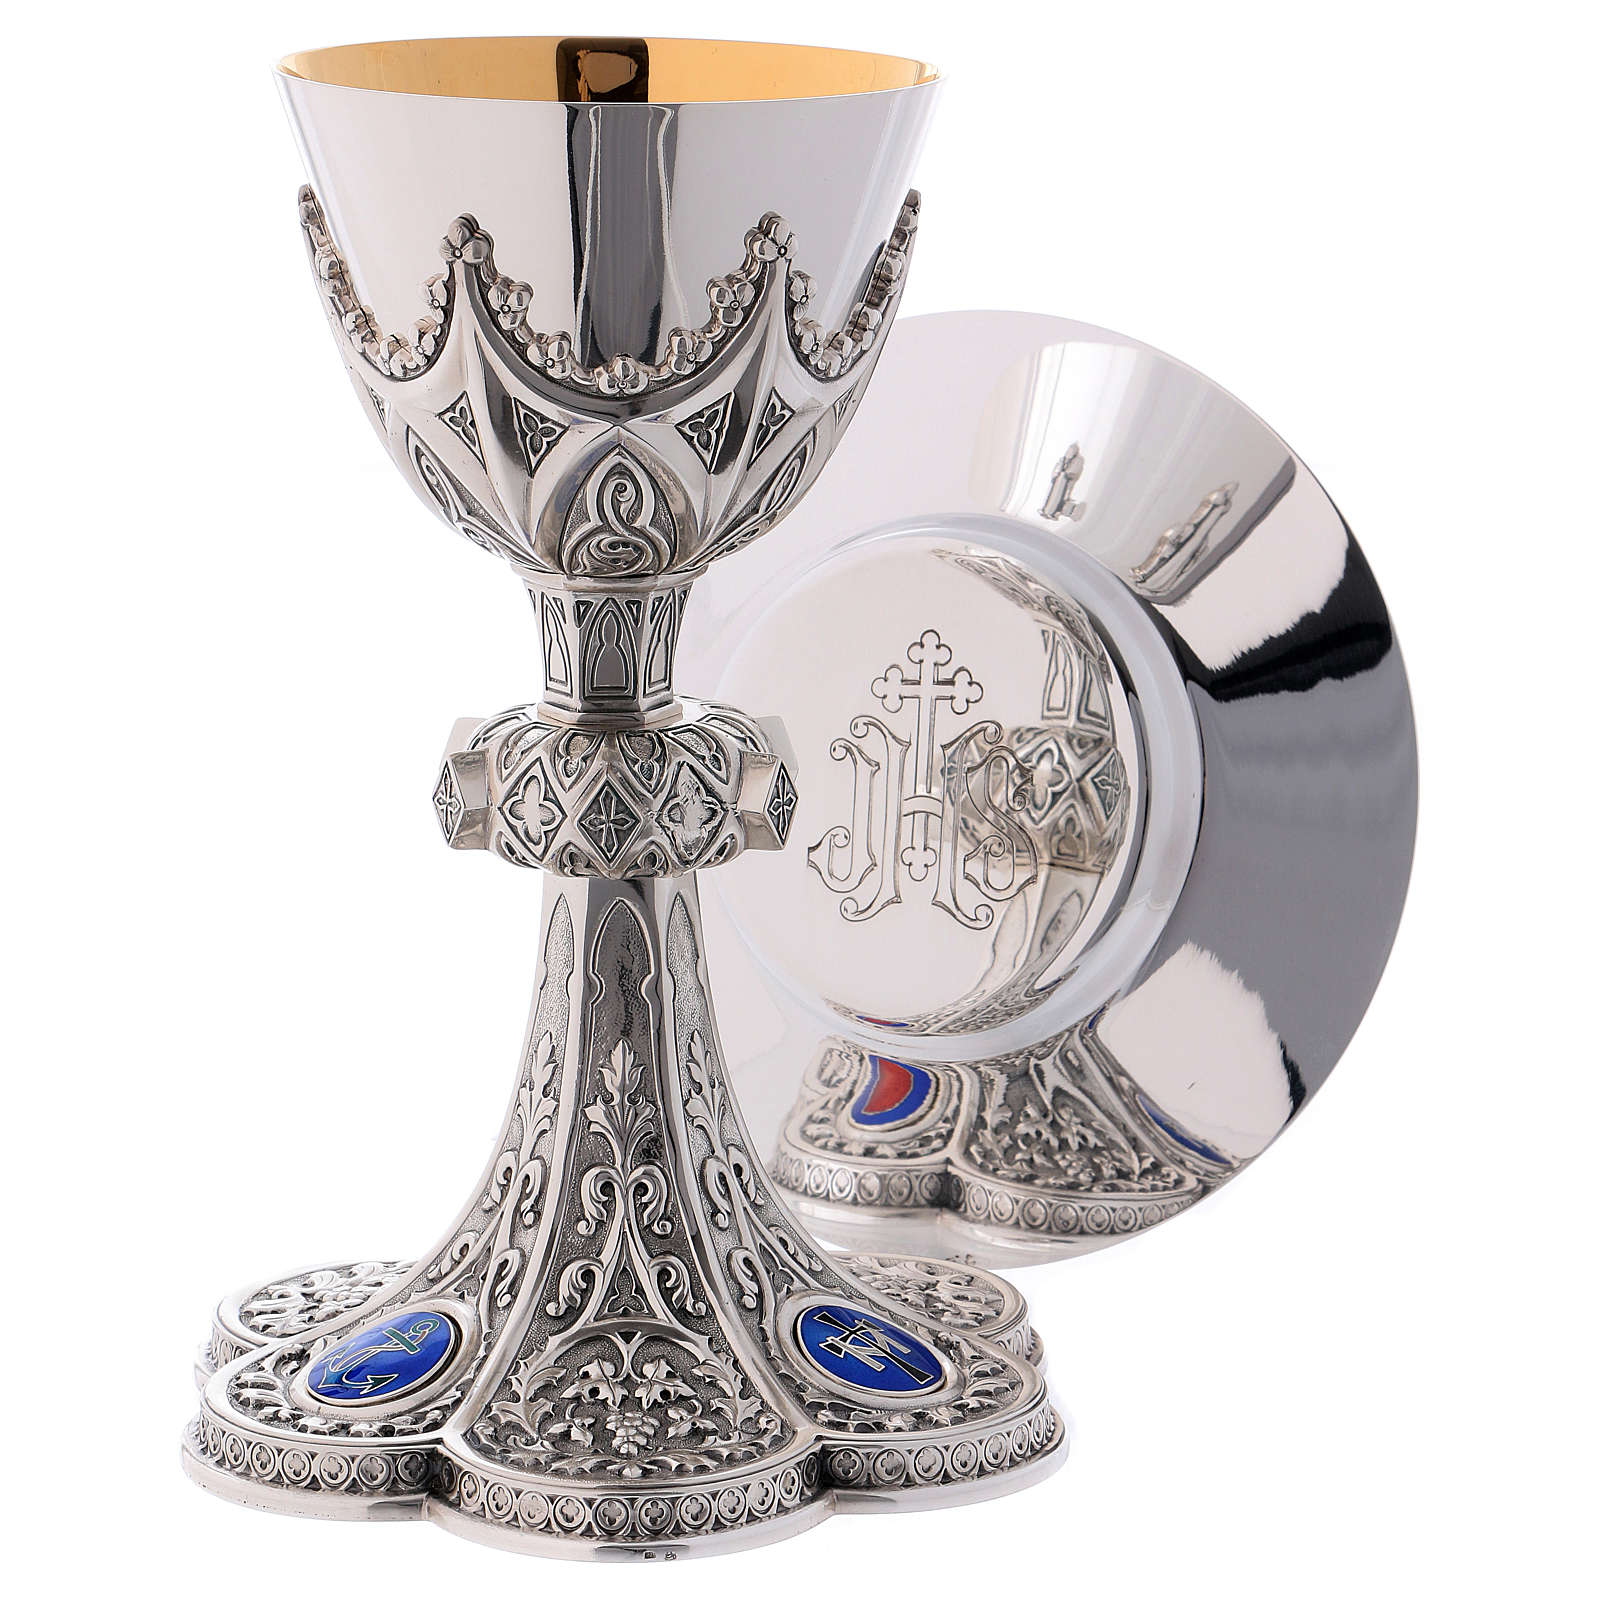 Chalice, paten and ciborium for offertory Molina with Gothic decoration and medallions in 925 solid sterling silver 4